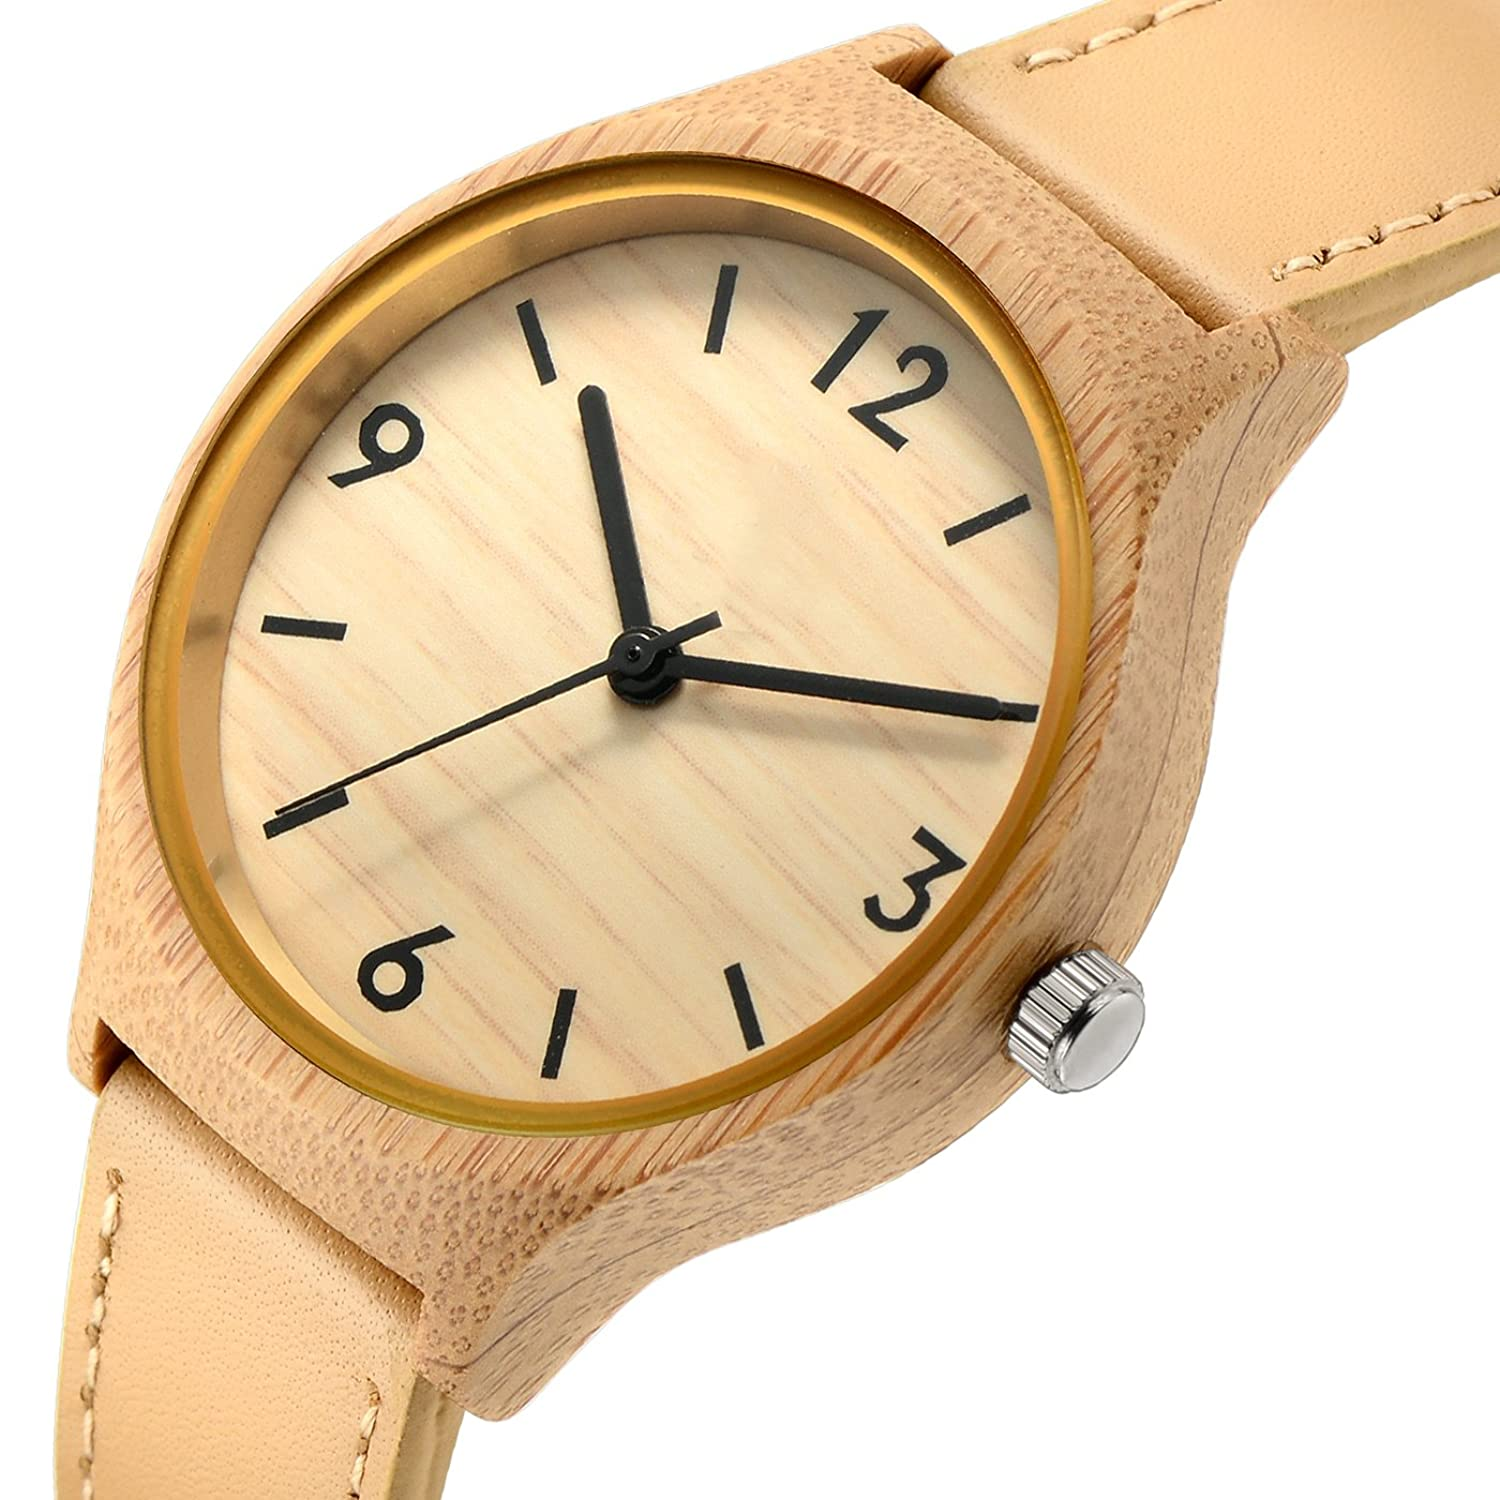 products au lanta watch australia bamboo watches wooden